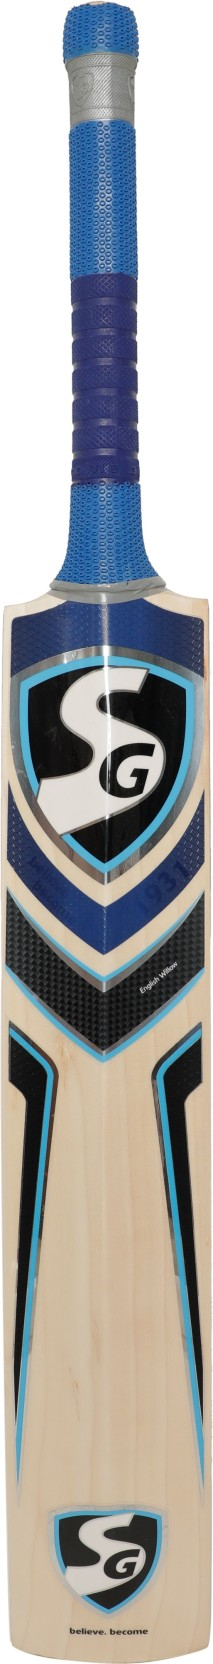 bbb5bc0ad1a SG VS 319 XTREME English Willow Cricket Bat - Buy SG VS 319 XTREME ...